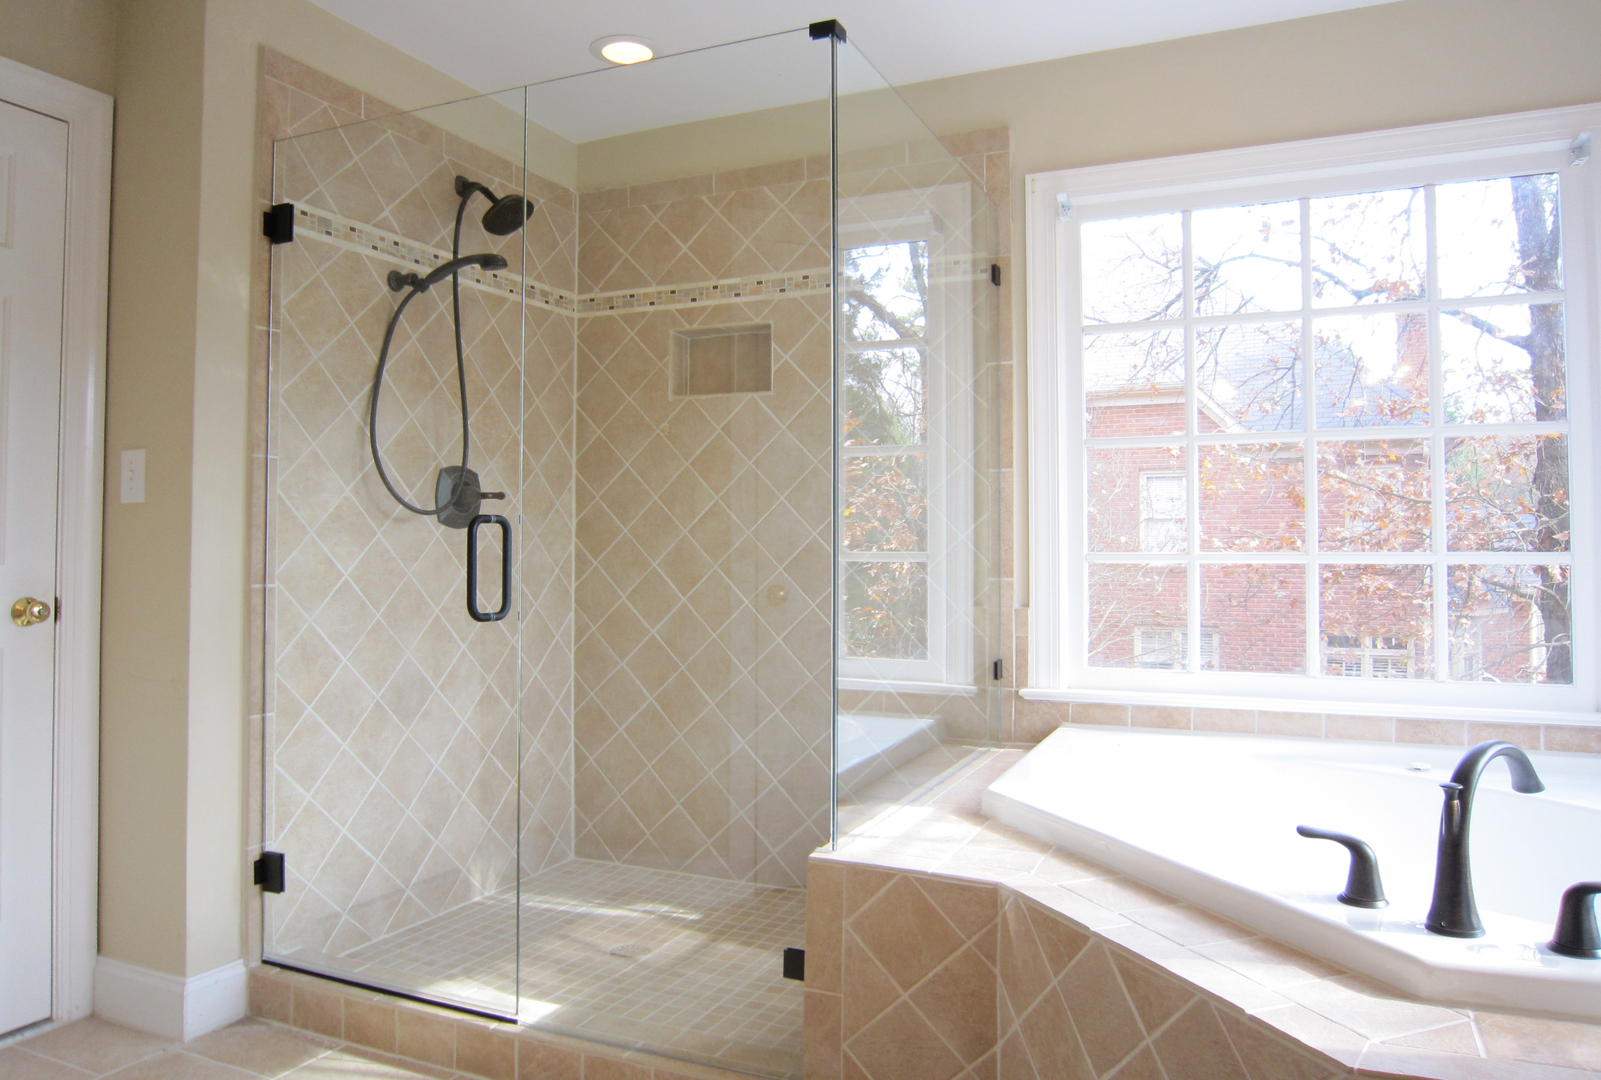 Carolina Sgo - Frameless Glass Shower Doors, Frameless Shower Door ...